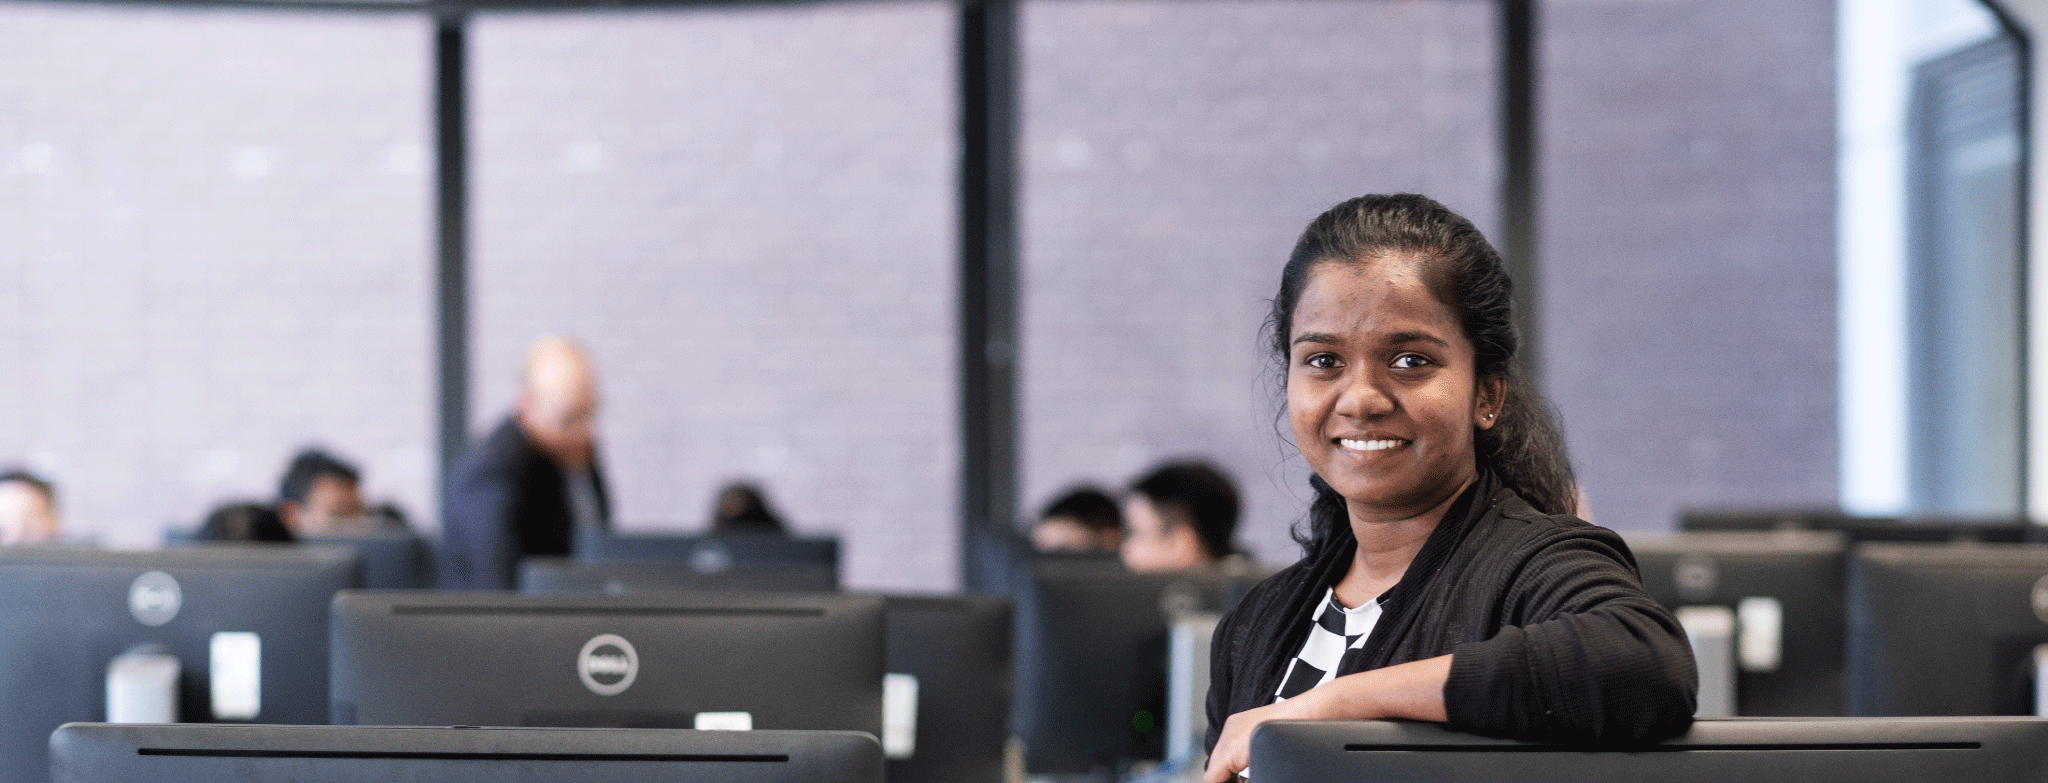 "<h1>ACS Professional Year</h1><h4>Enrol for as little as $11,300!</h4><p>All qualifying students enrolling to start in the ACS Professional Year Program before 31 December 2019 will receive a discount of $1,000 in their PY fees. Check the <a href=""/programs/acs-professional-year-program/"">ACS PYP</a> page for terms and conditions!</p>"